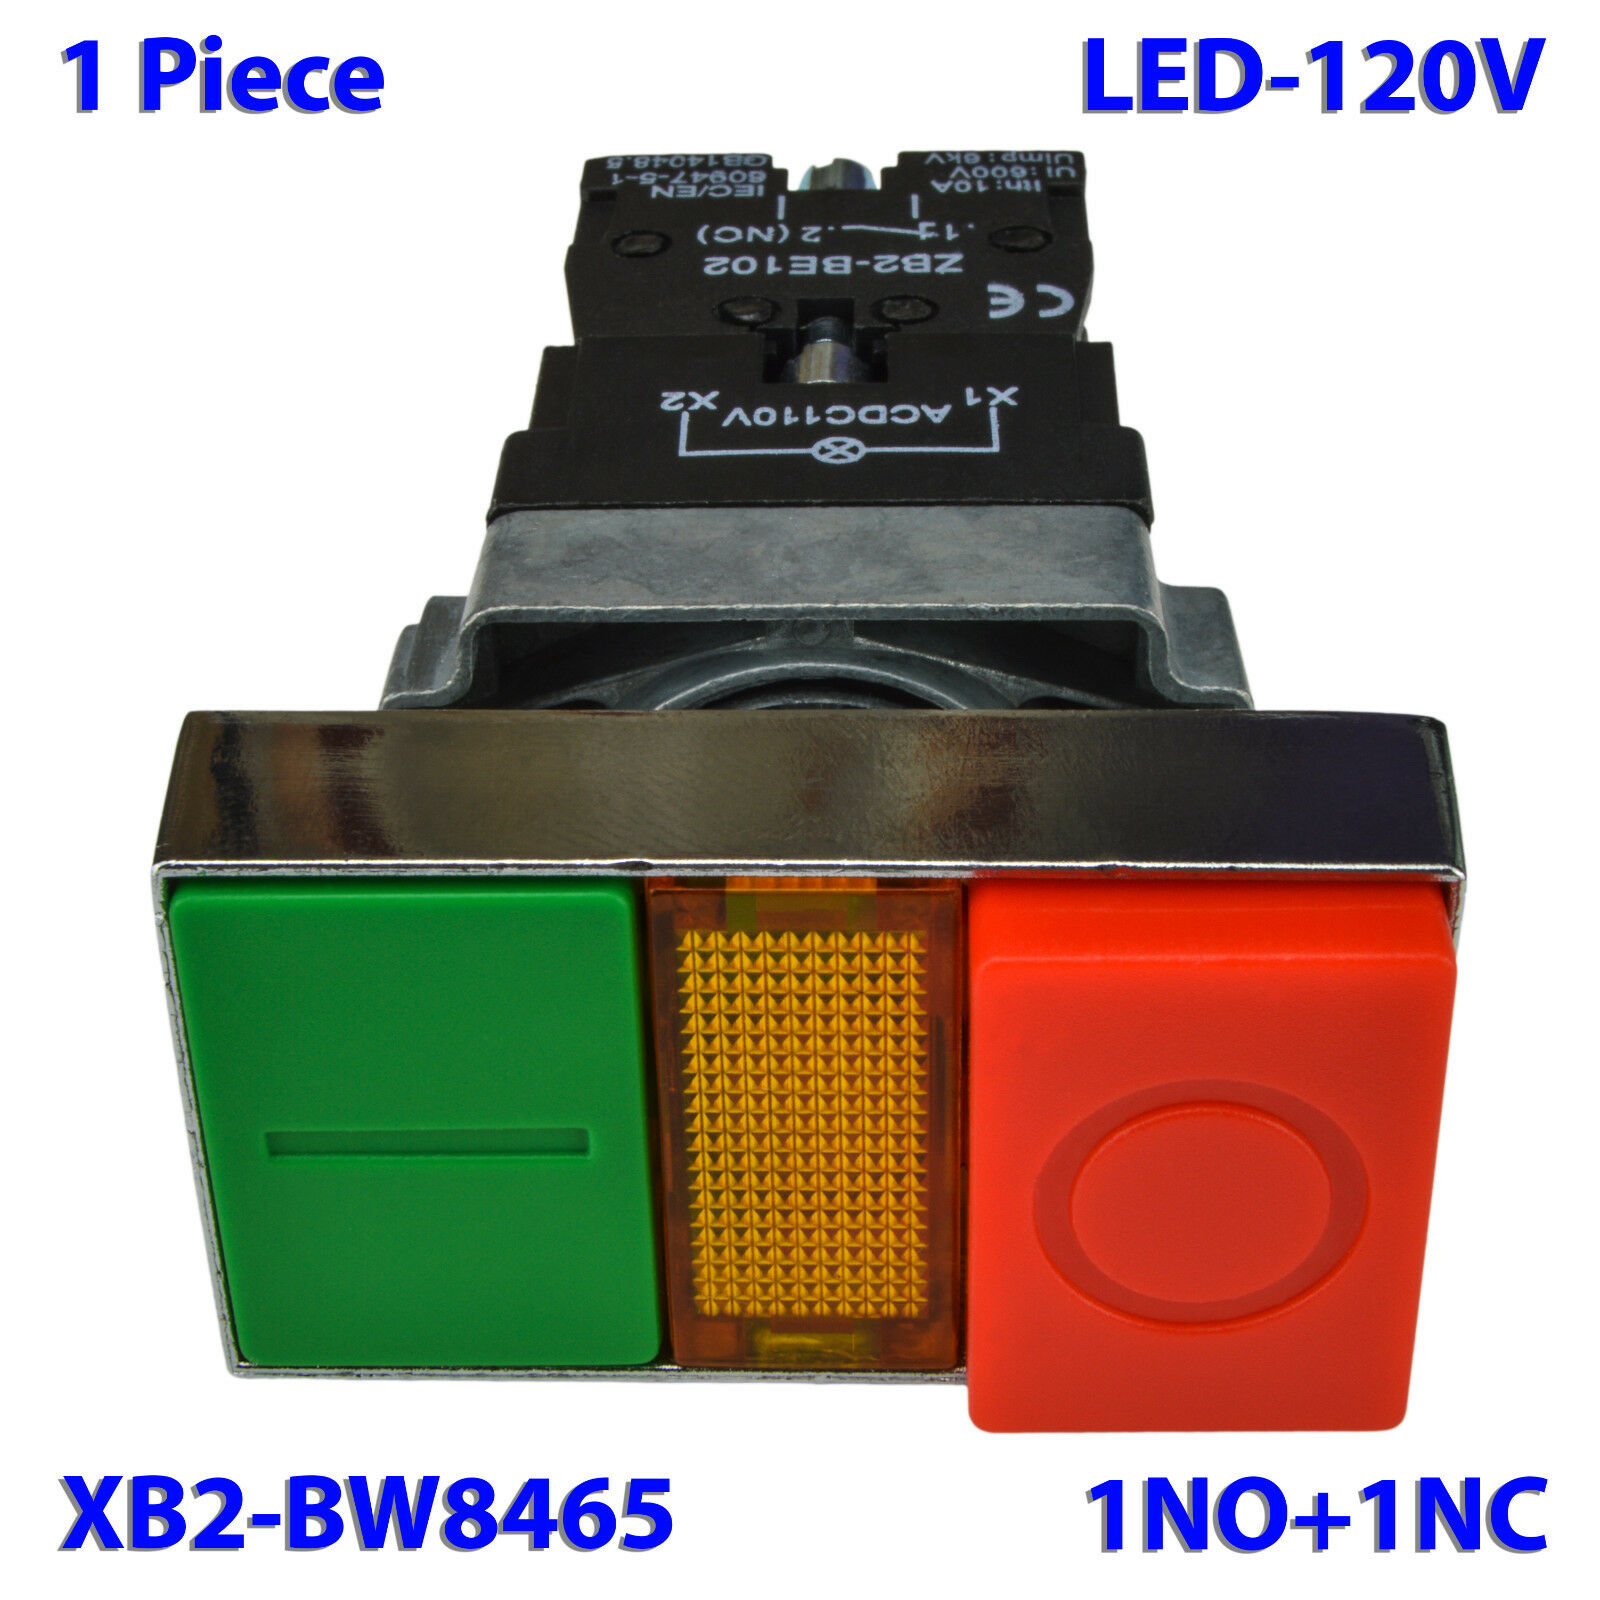 2 Pcs Xb2 Bw8465 Double Push Button Switch Start Stop Momentary Is Using A To Power Ignition And Norton Secured Powered By Verisign